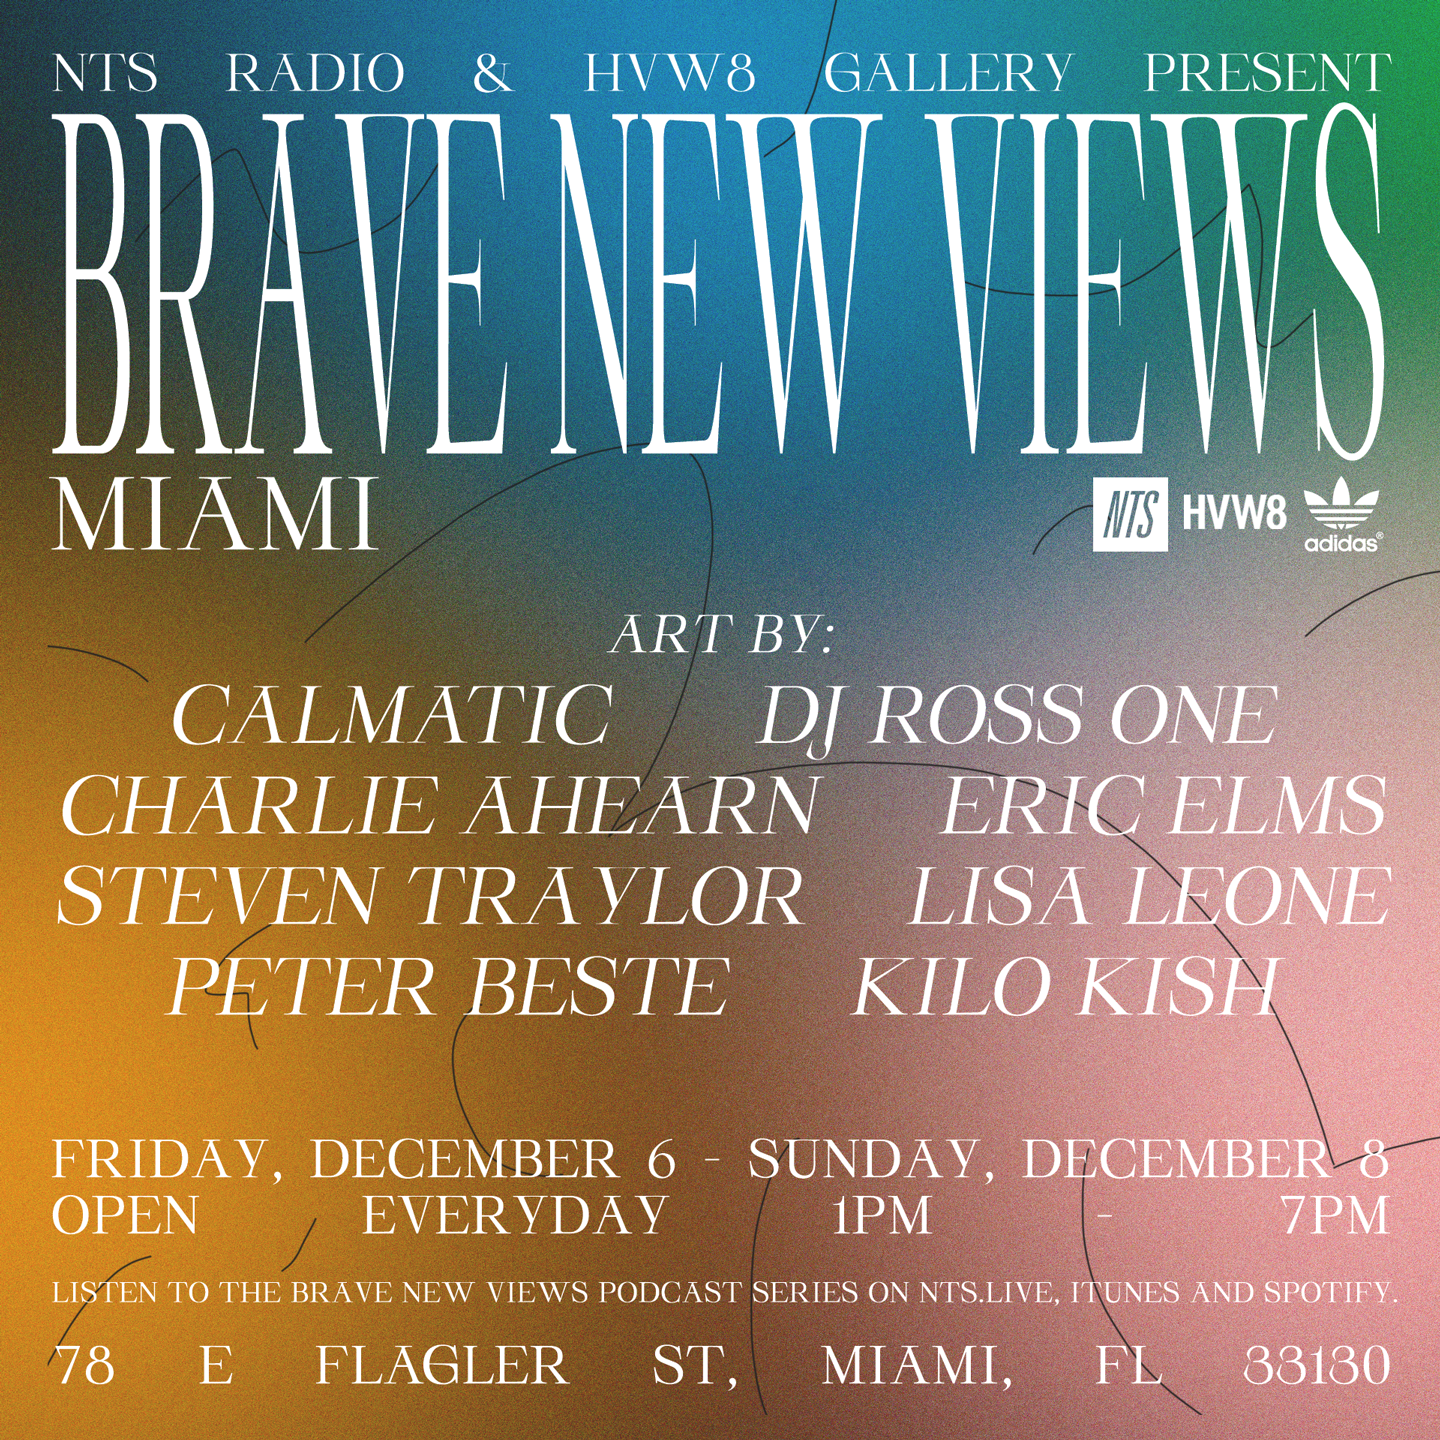 _(With podcast info) - Brave New Views Miami.png